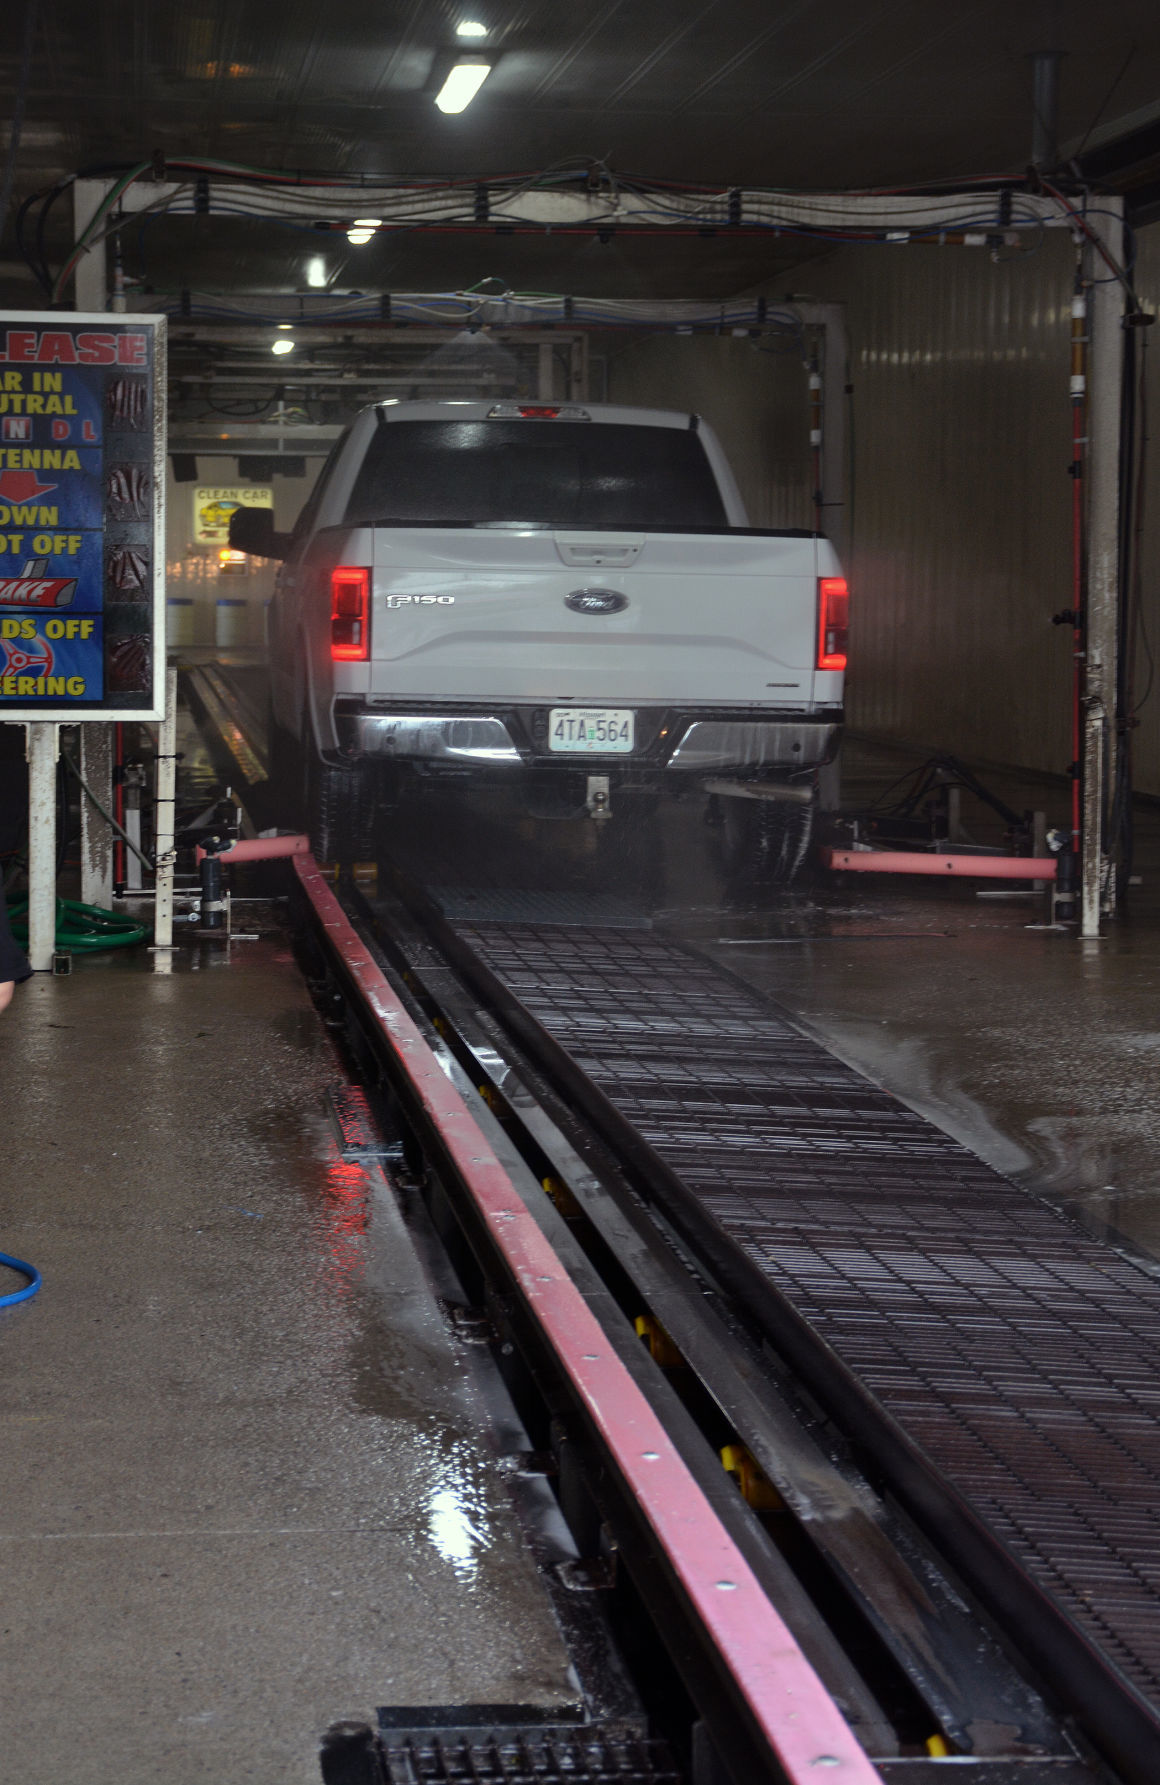 Car wash owner takes pride in family business community business car wash owner takes pride in family business community solutioingenieria Images